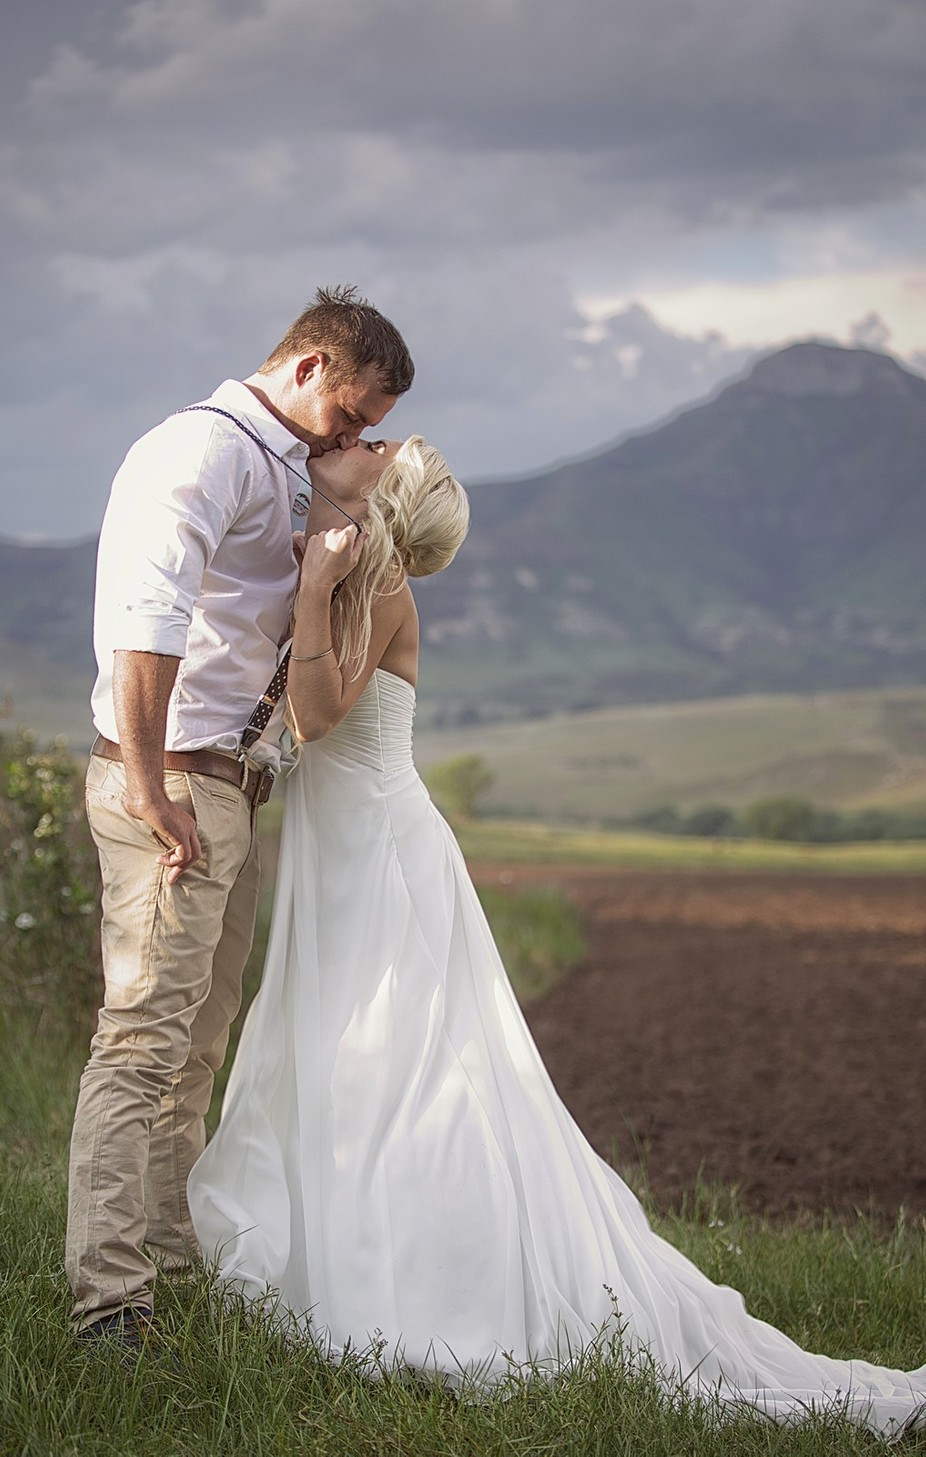 Stolen Kiss by JohnFilmalter - Couples In Love Photo Contest